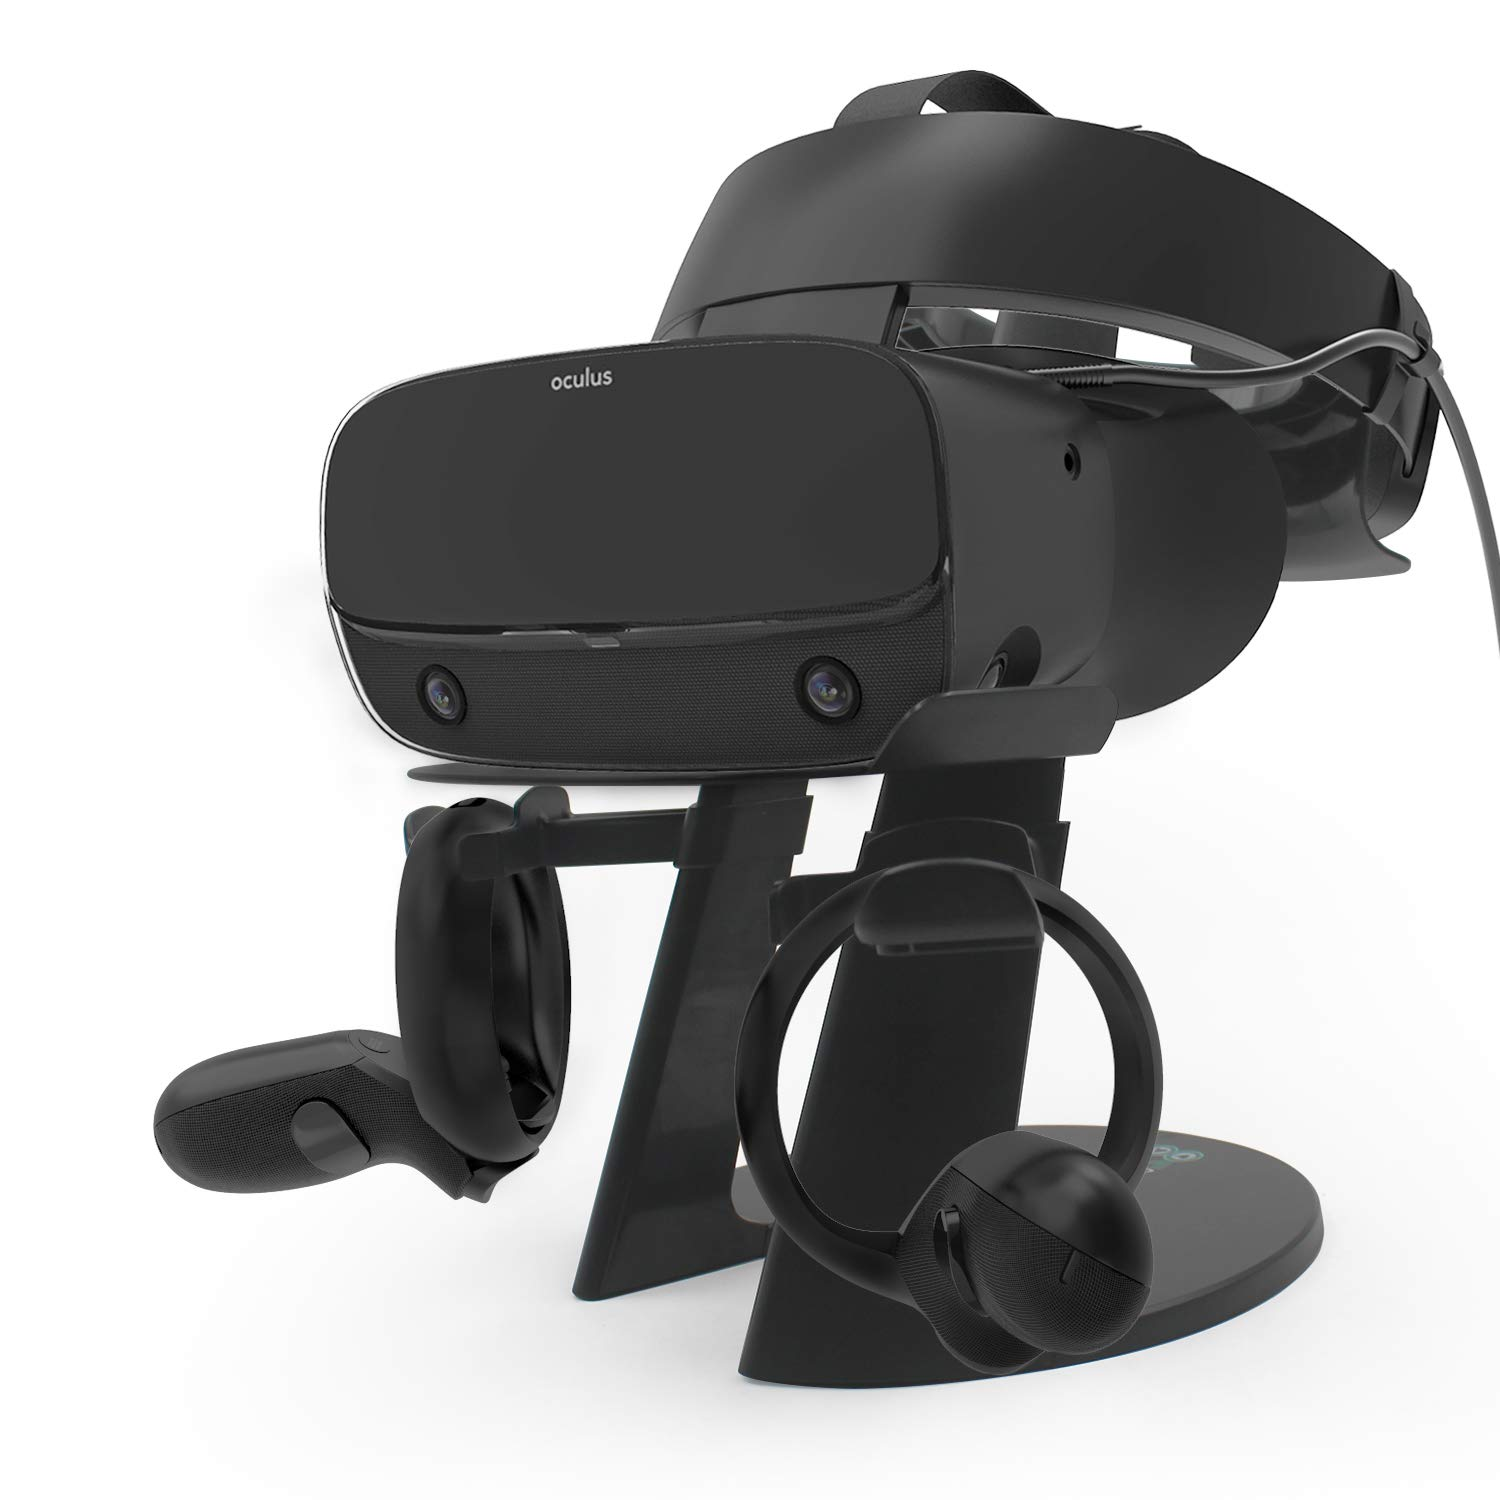 AFAITH VR Stand, VR Headset Display Stand with Game Controller Holder for Oculus Rift S/Oculus Quest/Rift Headset and…